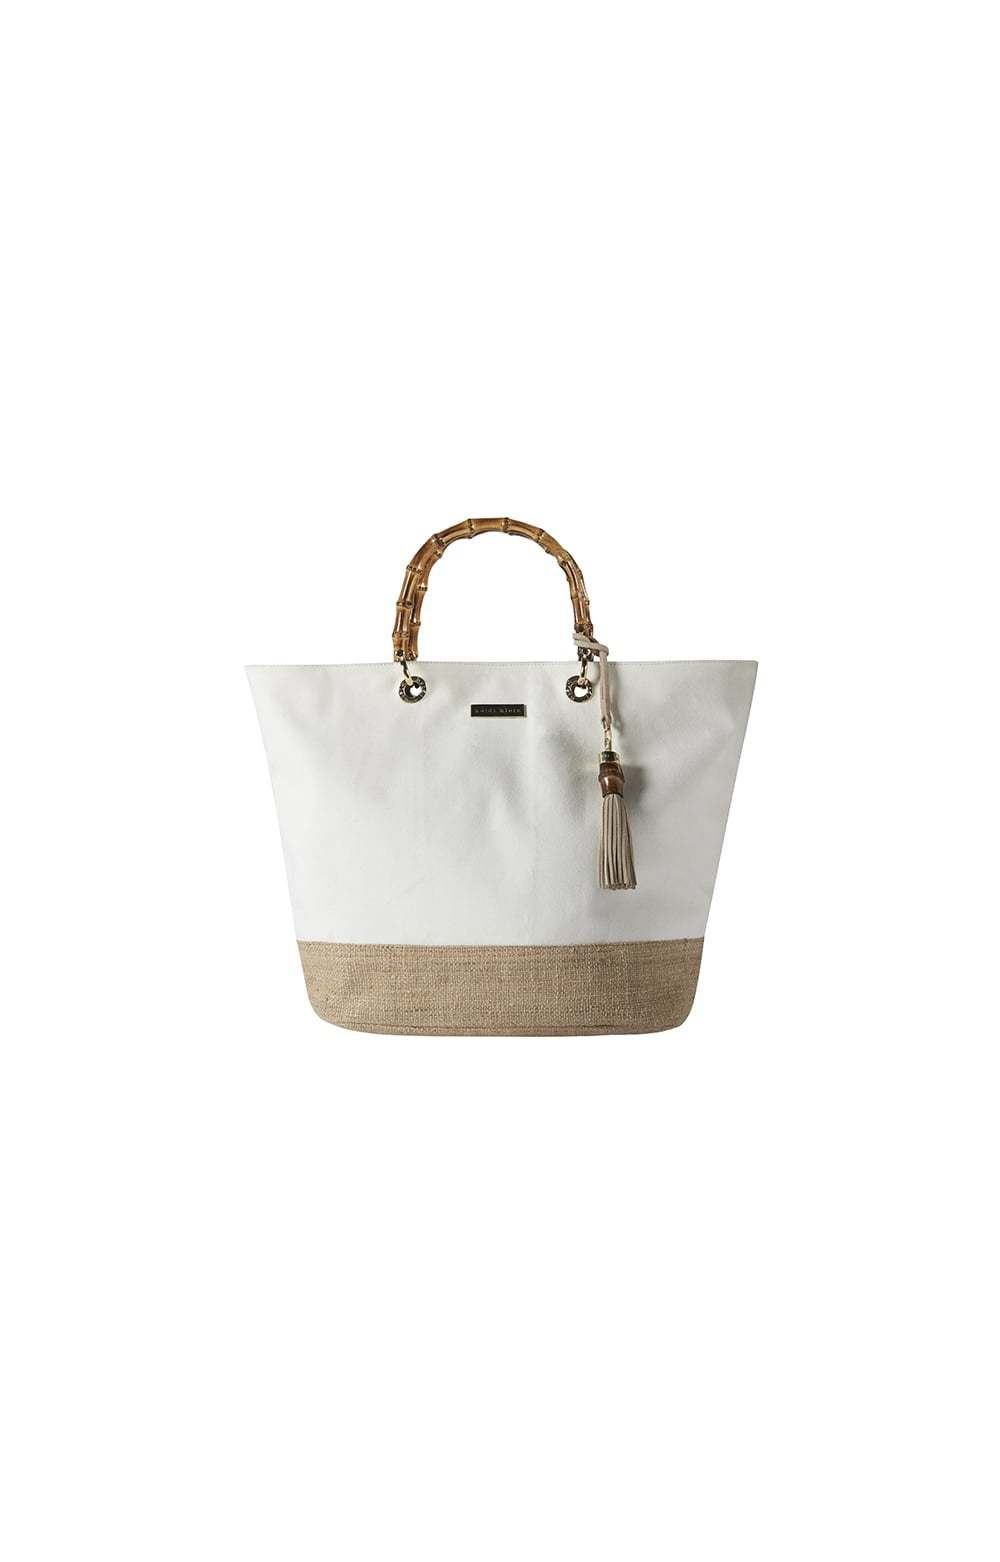 Natural Savannah Bay White Medium Bamboo Bag - predominant colour: white; secondary colour: camel; occasions: casual, creative work; type of pattern: standard; style: tote; length: handle; size: oversized; material: leather; embellishment: tassels; finish: plain; pattern: colourblock; season: s/s 2013; wardrobe: highlight